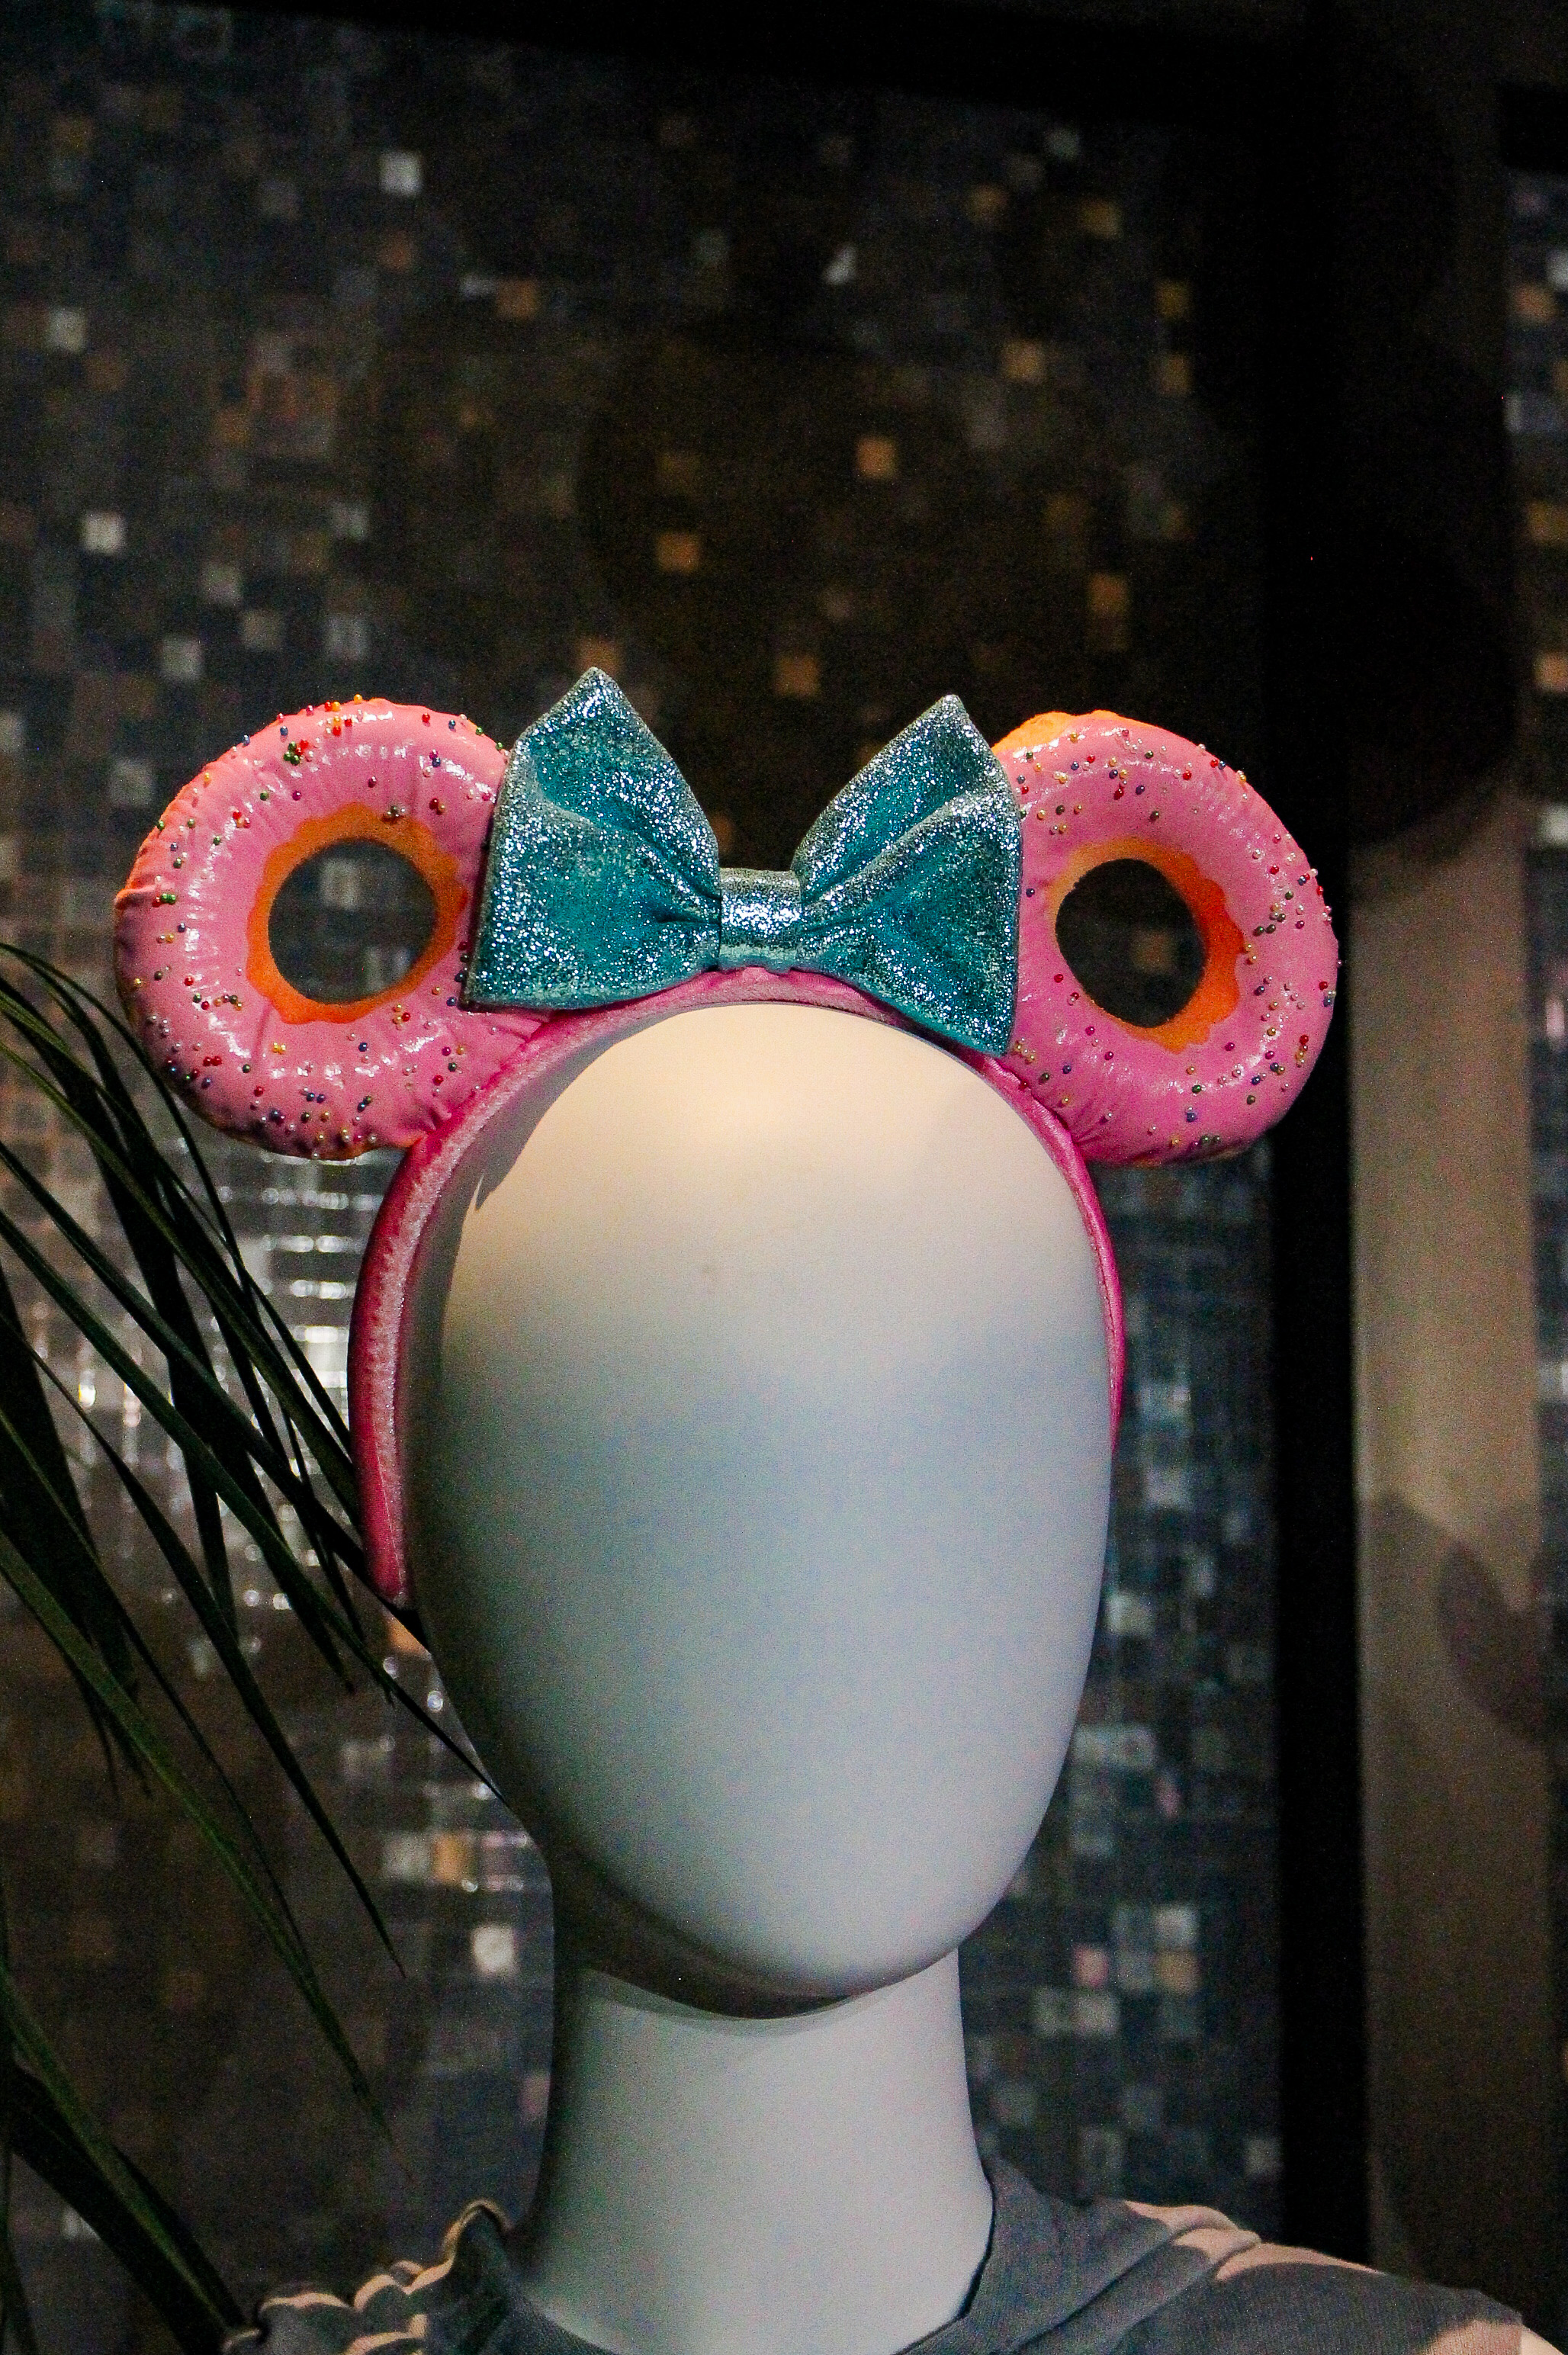 Looking for the best Mickey ears? These donut ears are a part of the Get Your Ears On celebration at Disneyland!